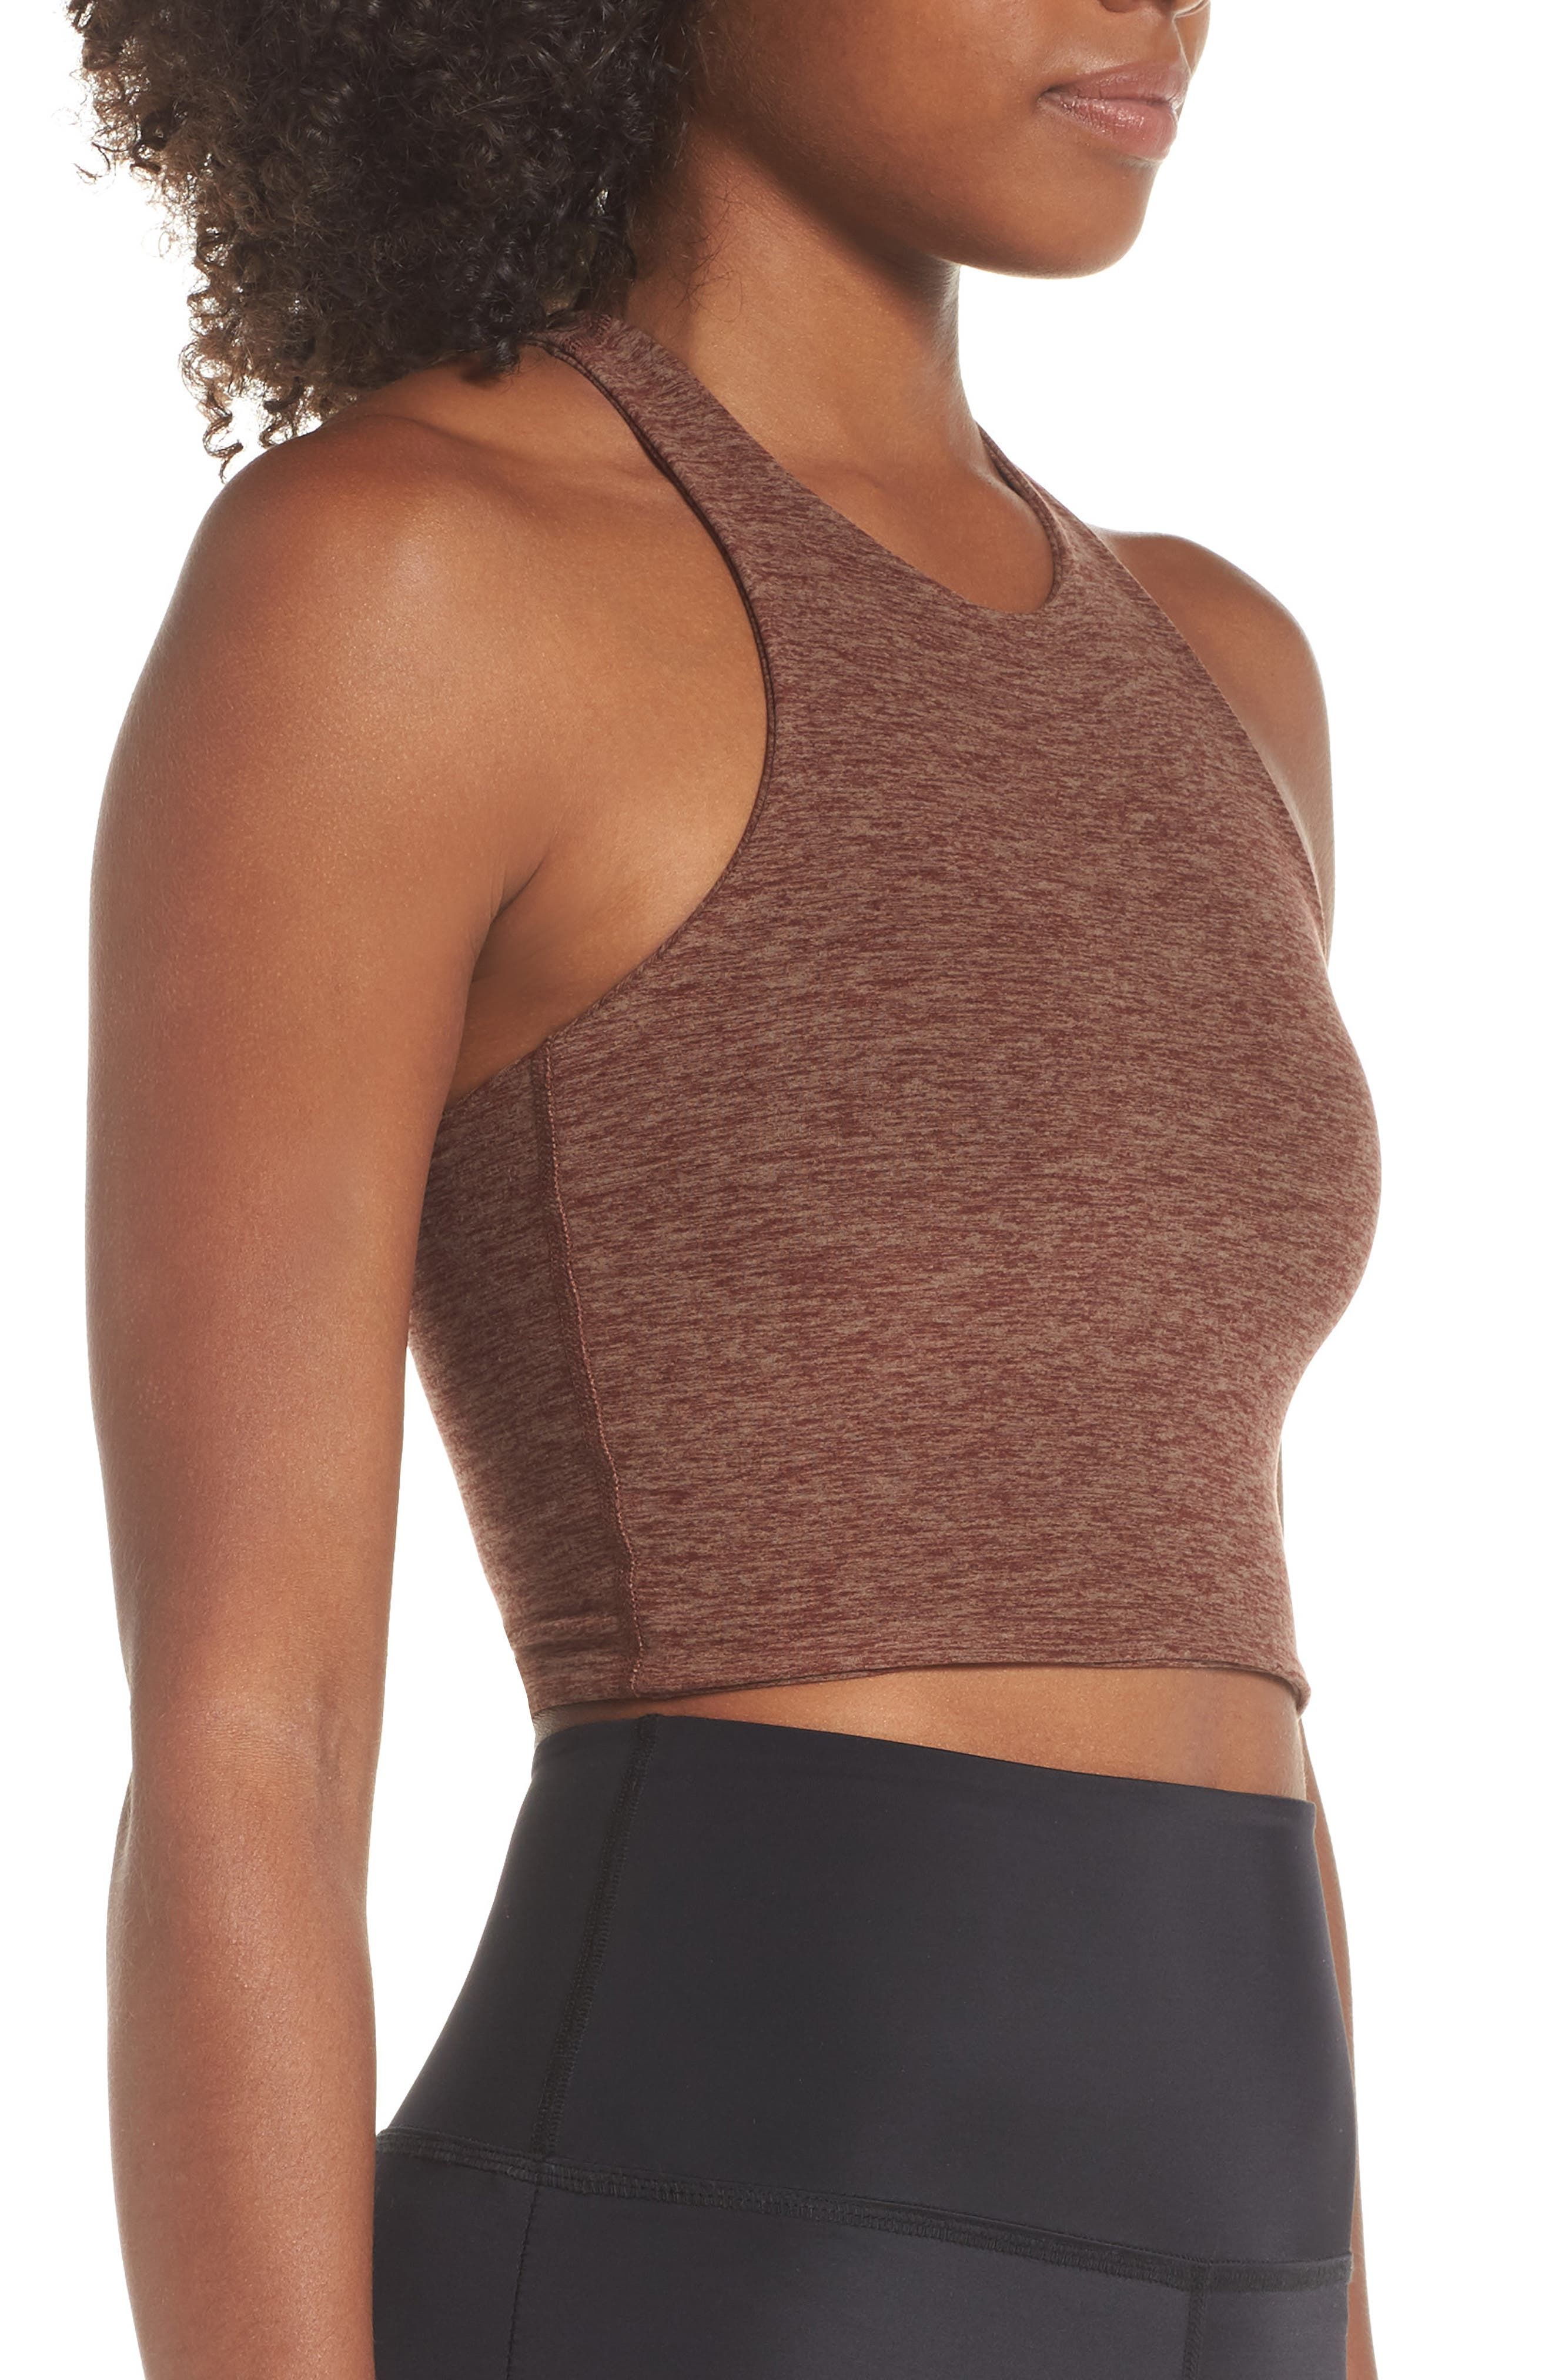 Across the Strap Cropped Top,                             Alternate thumbnail 3, color,                             RED ROCK/ TUMBLEWEED